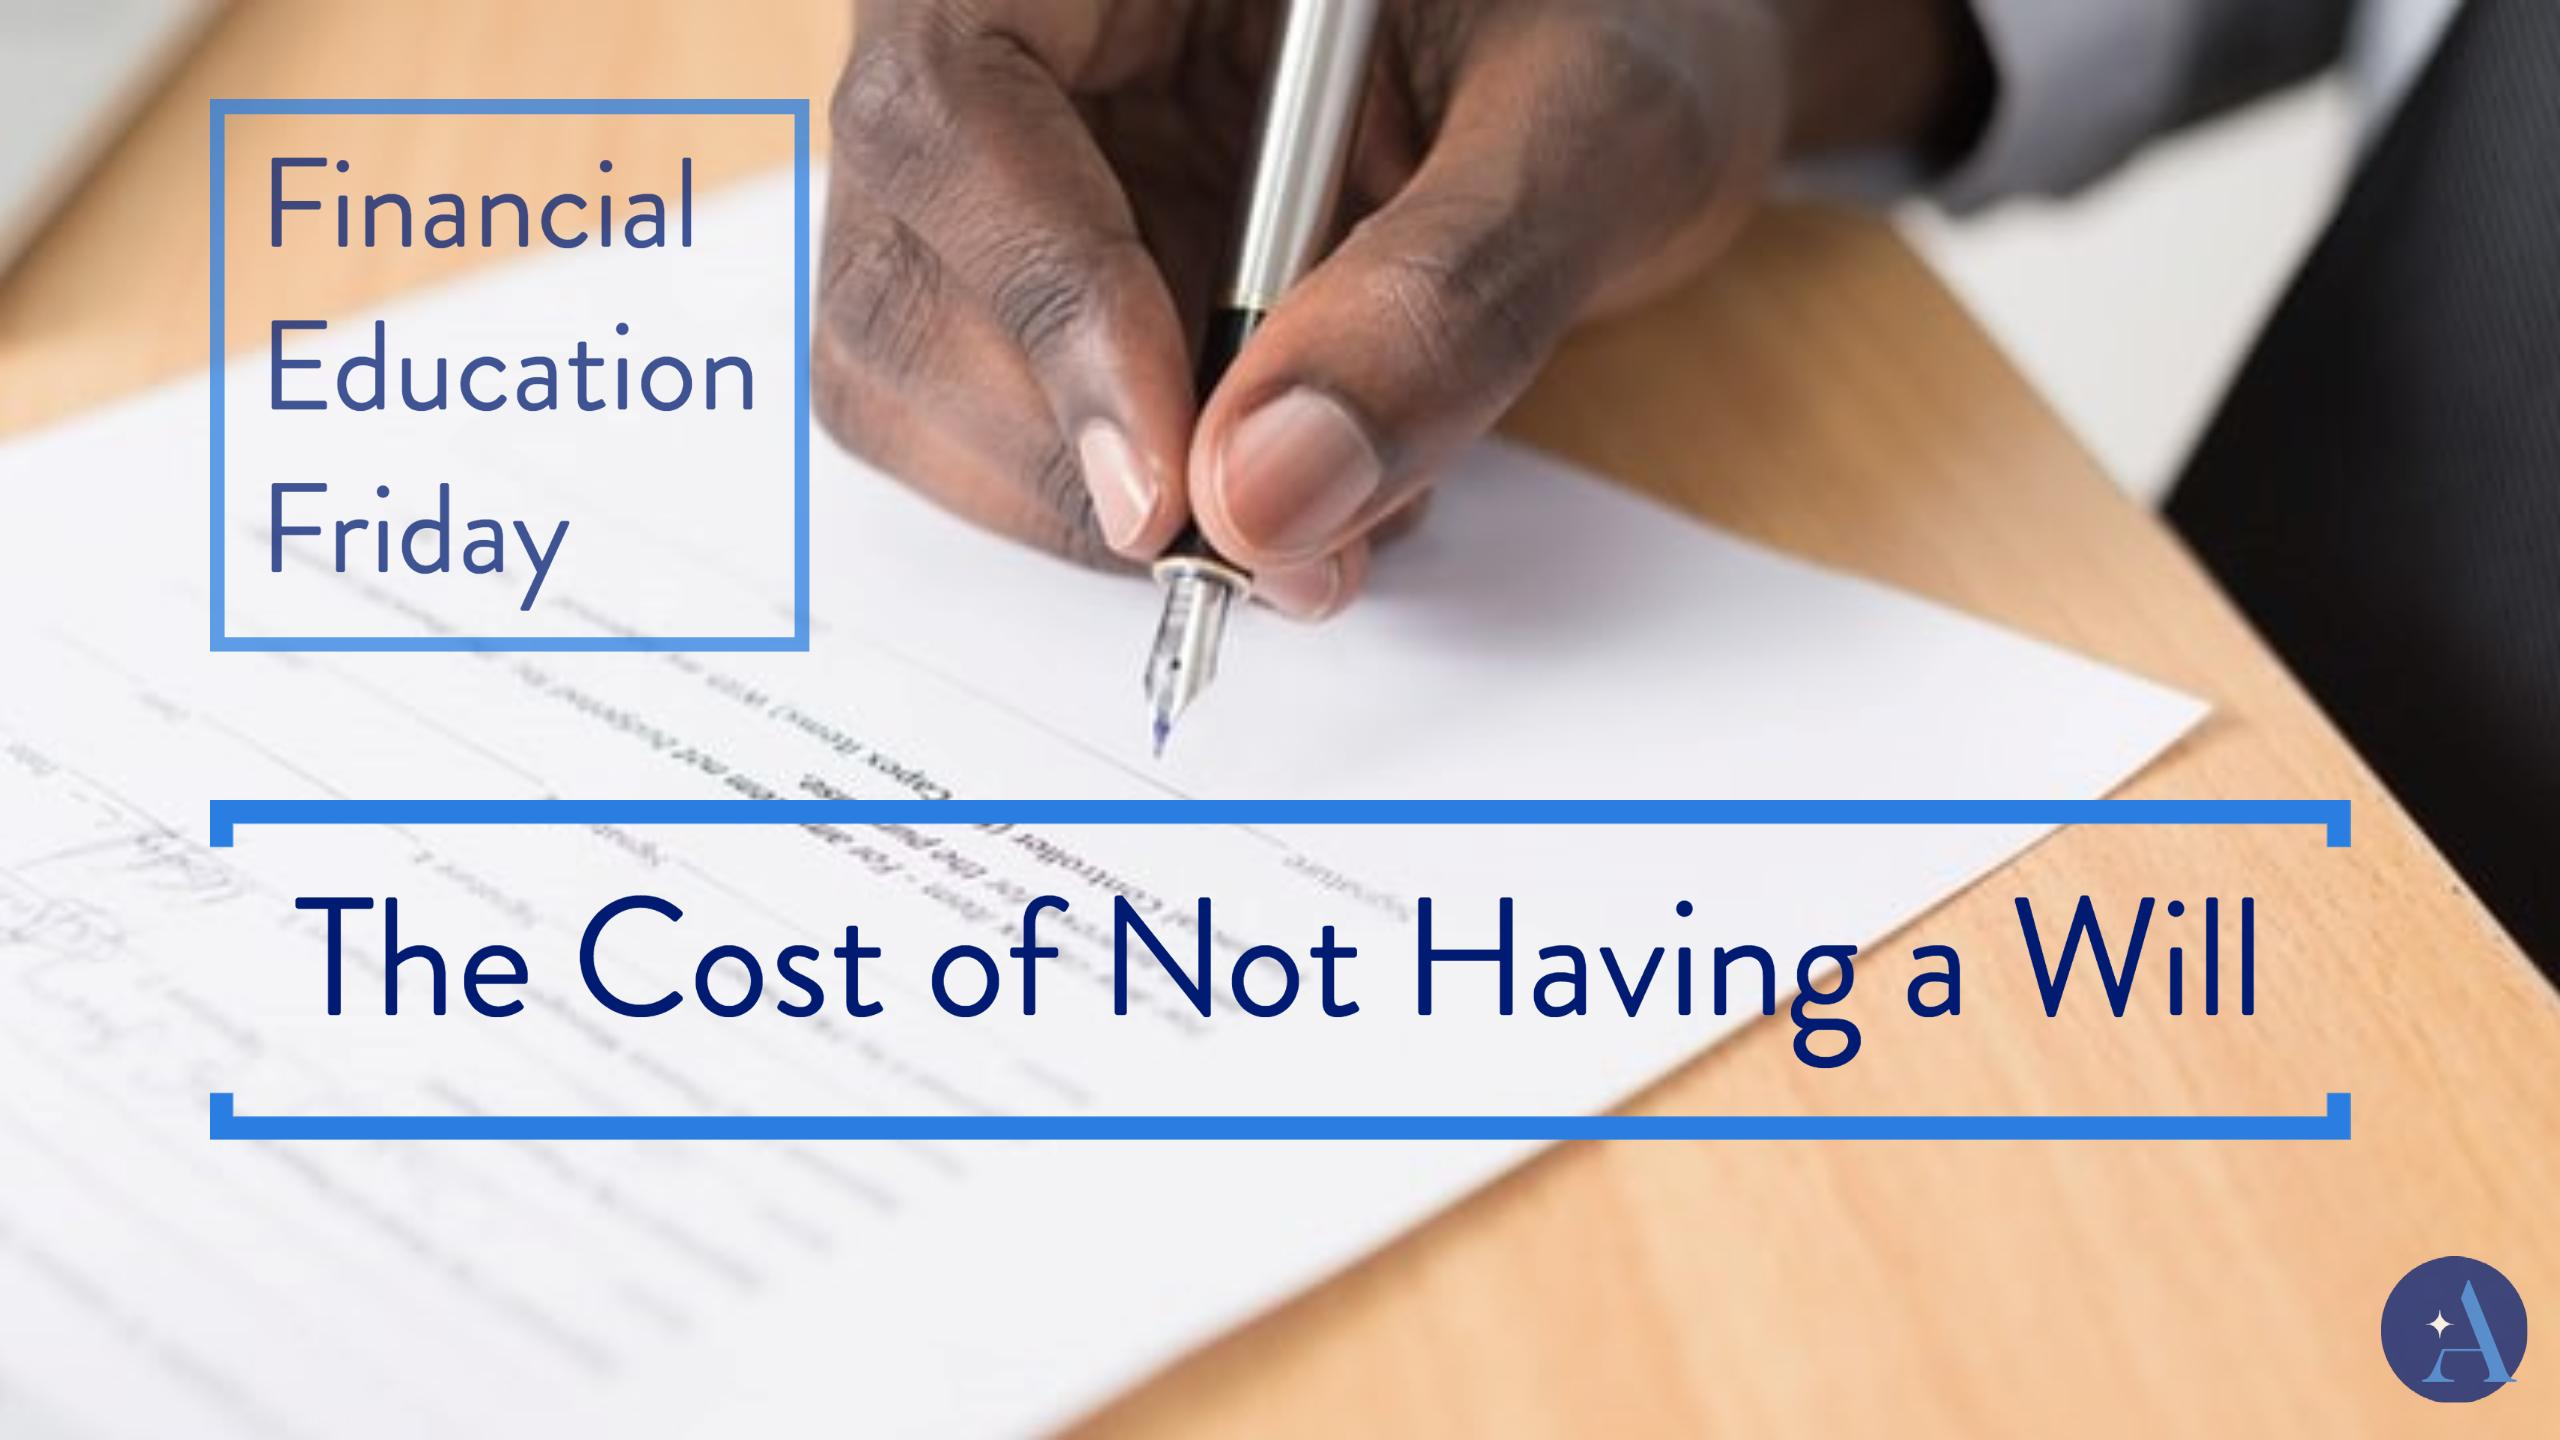 FinEdFriday: The Cost of Not Having a Will Thumbnail